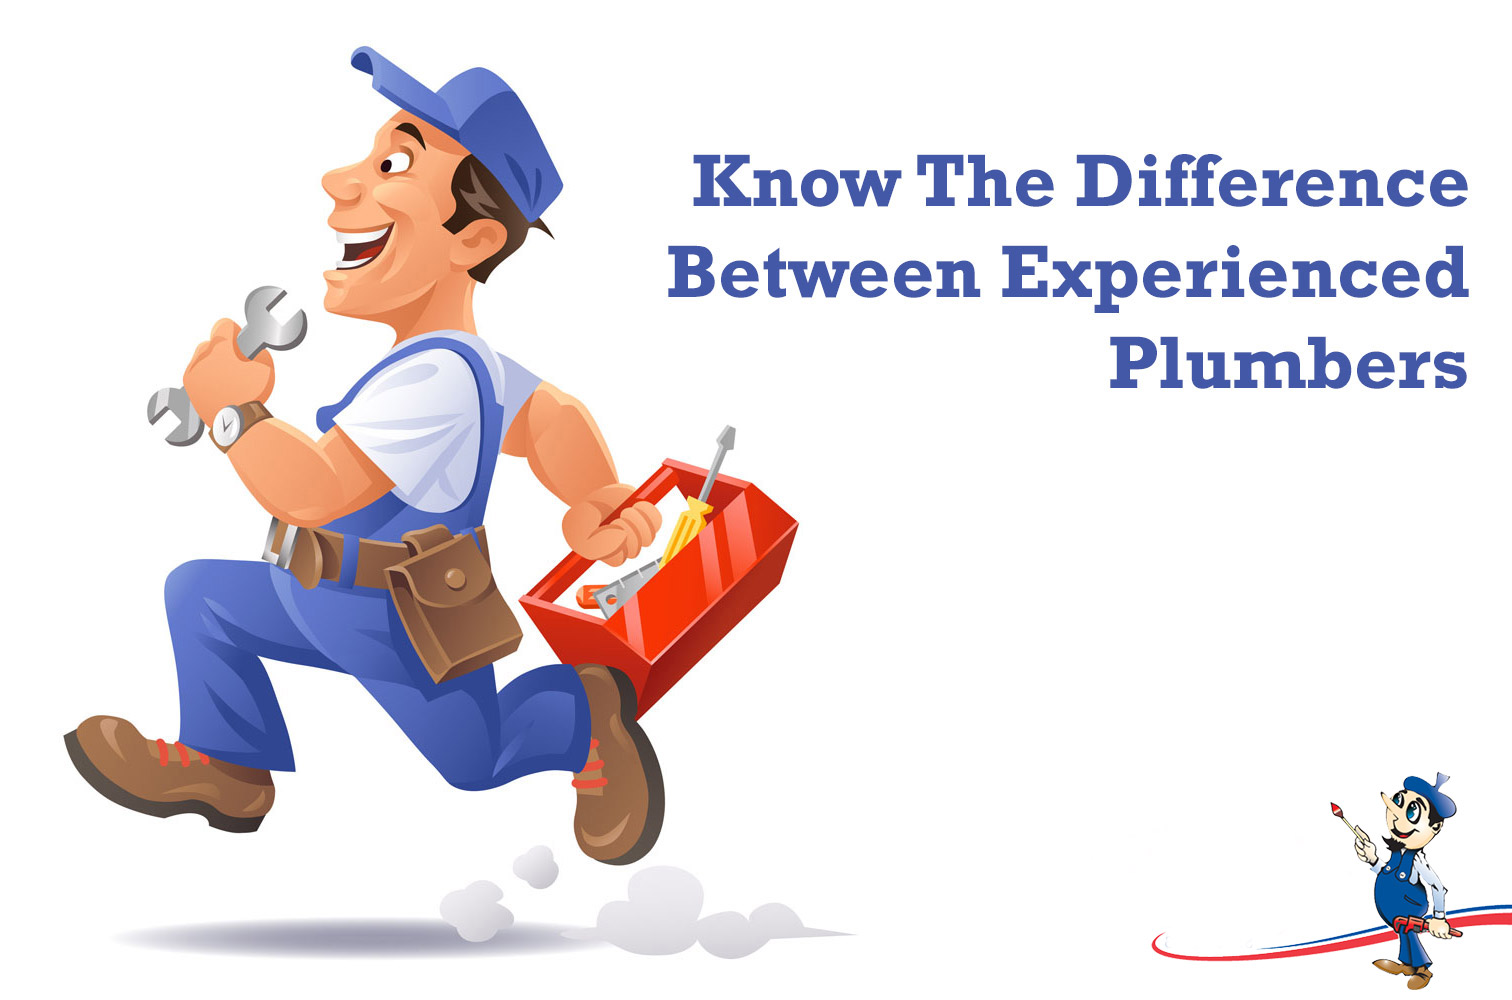 Know The Difference Between Experienced Plumbers